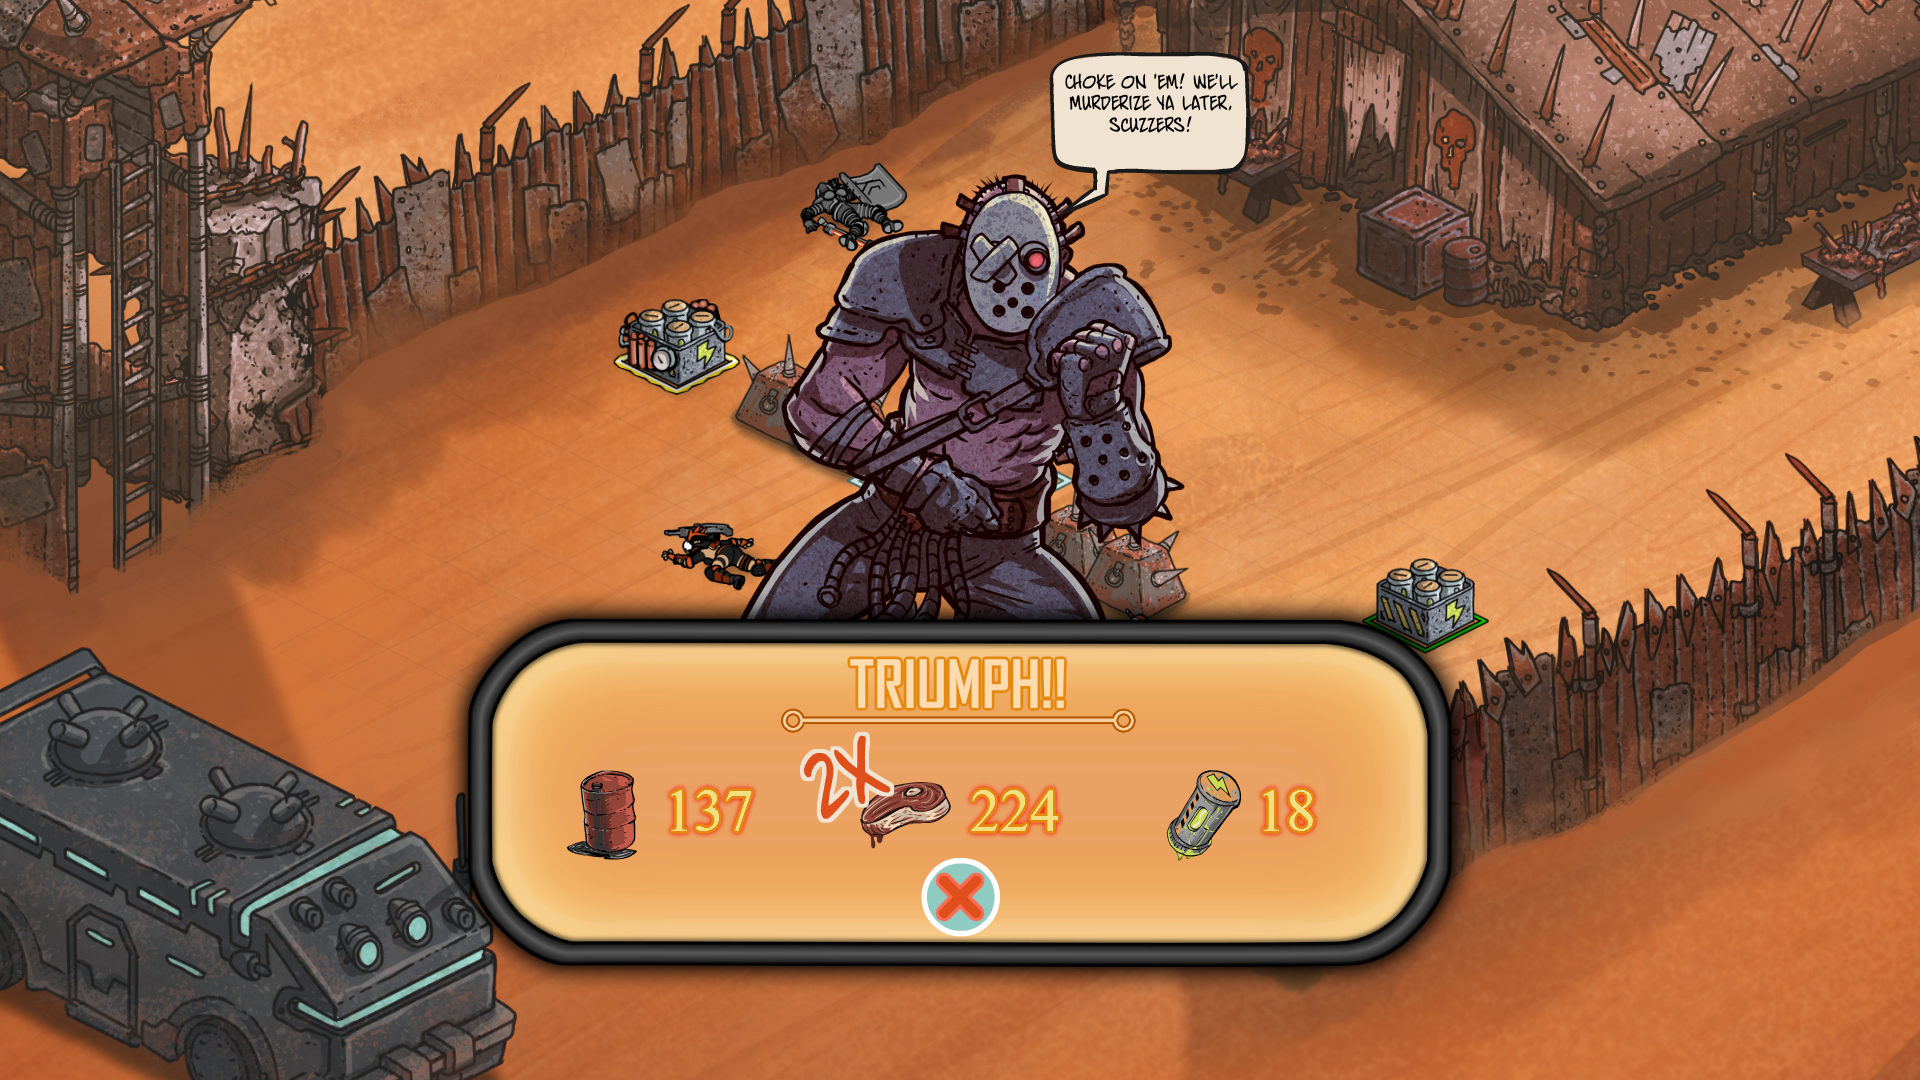 A message appears after a battle is finished in Skyshine's Bedlam